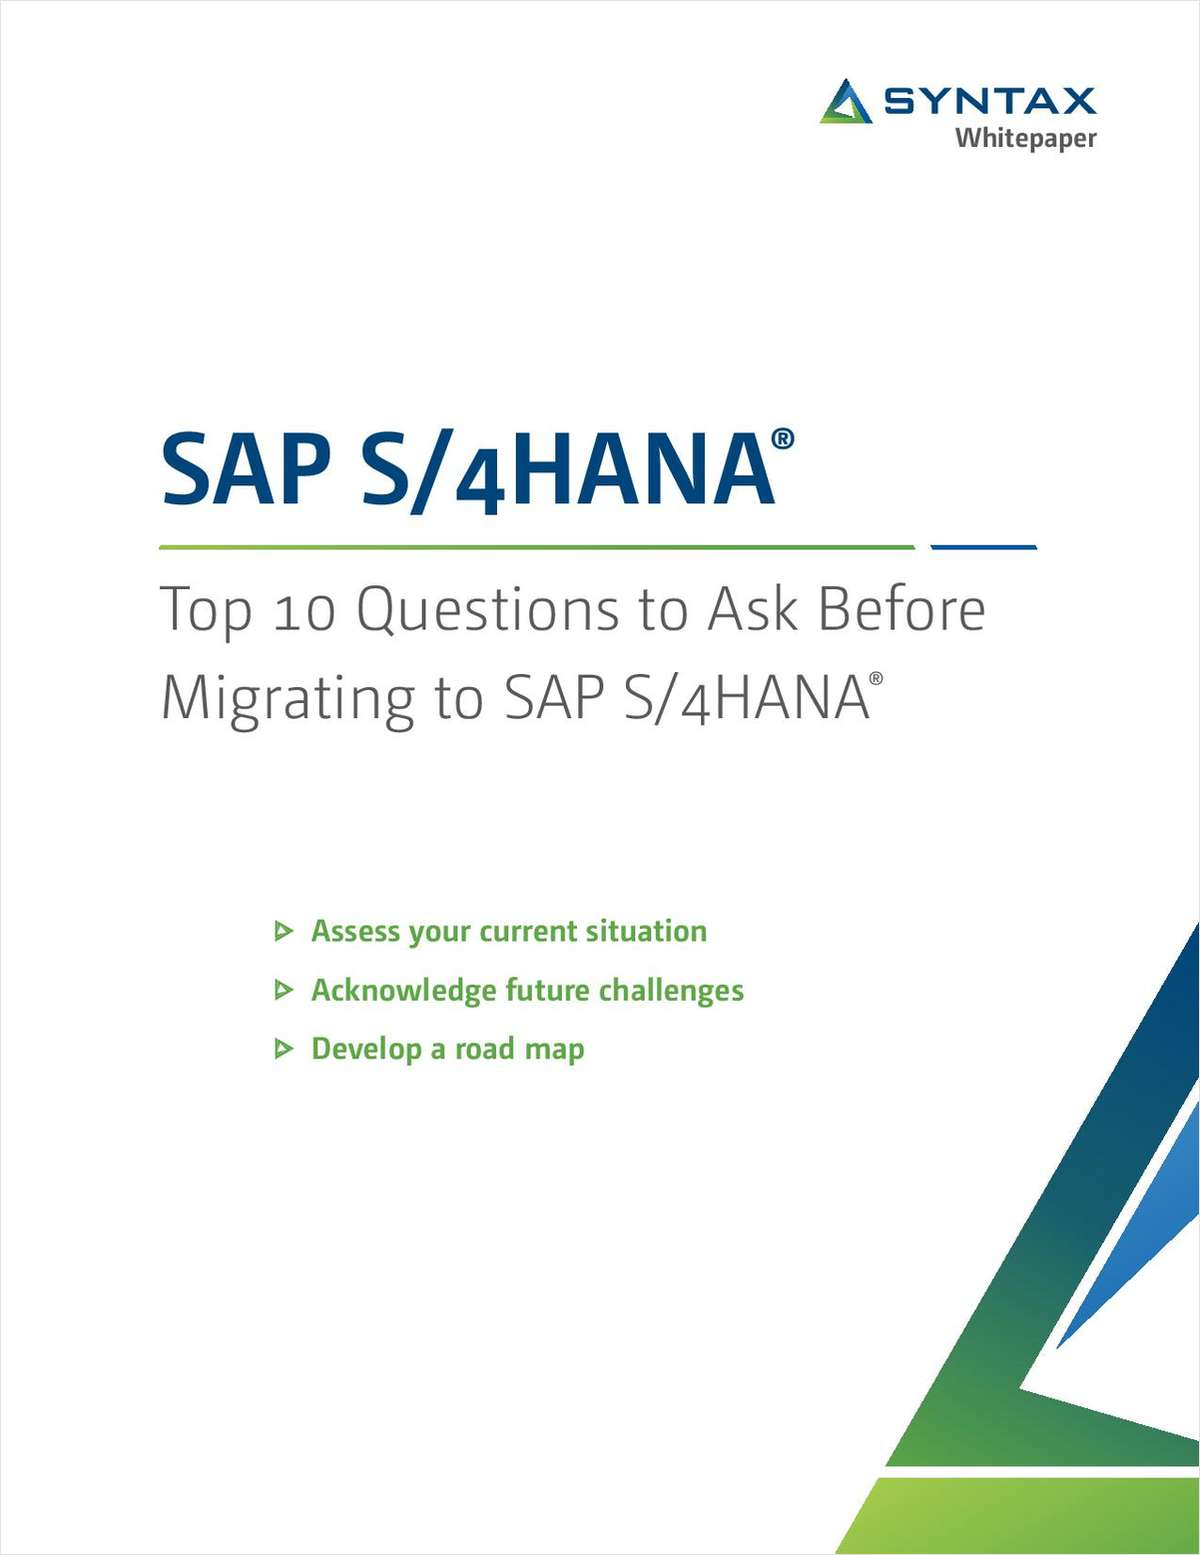 Top 10 Questions to Ask Before Migrating to SAP S/4HANA®